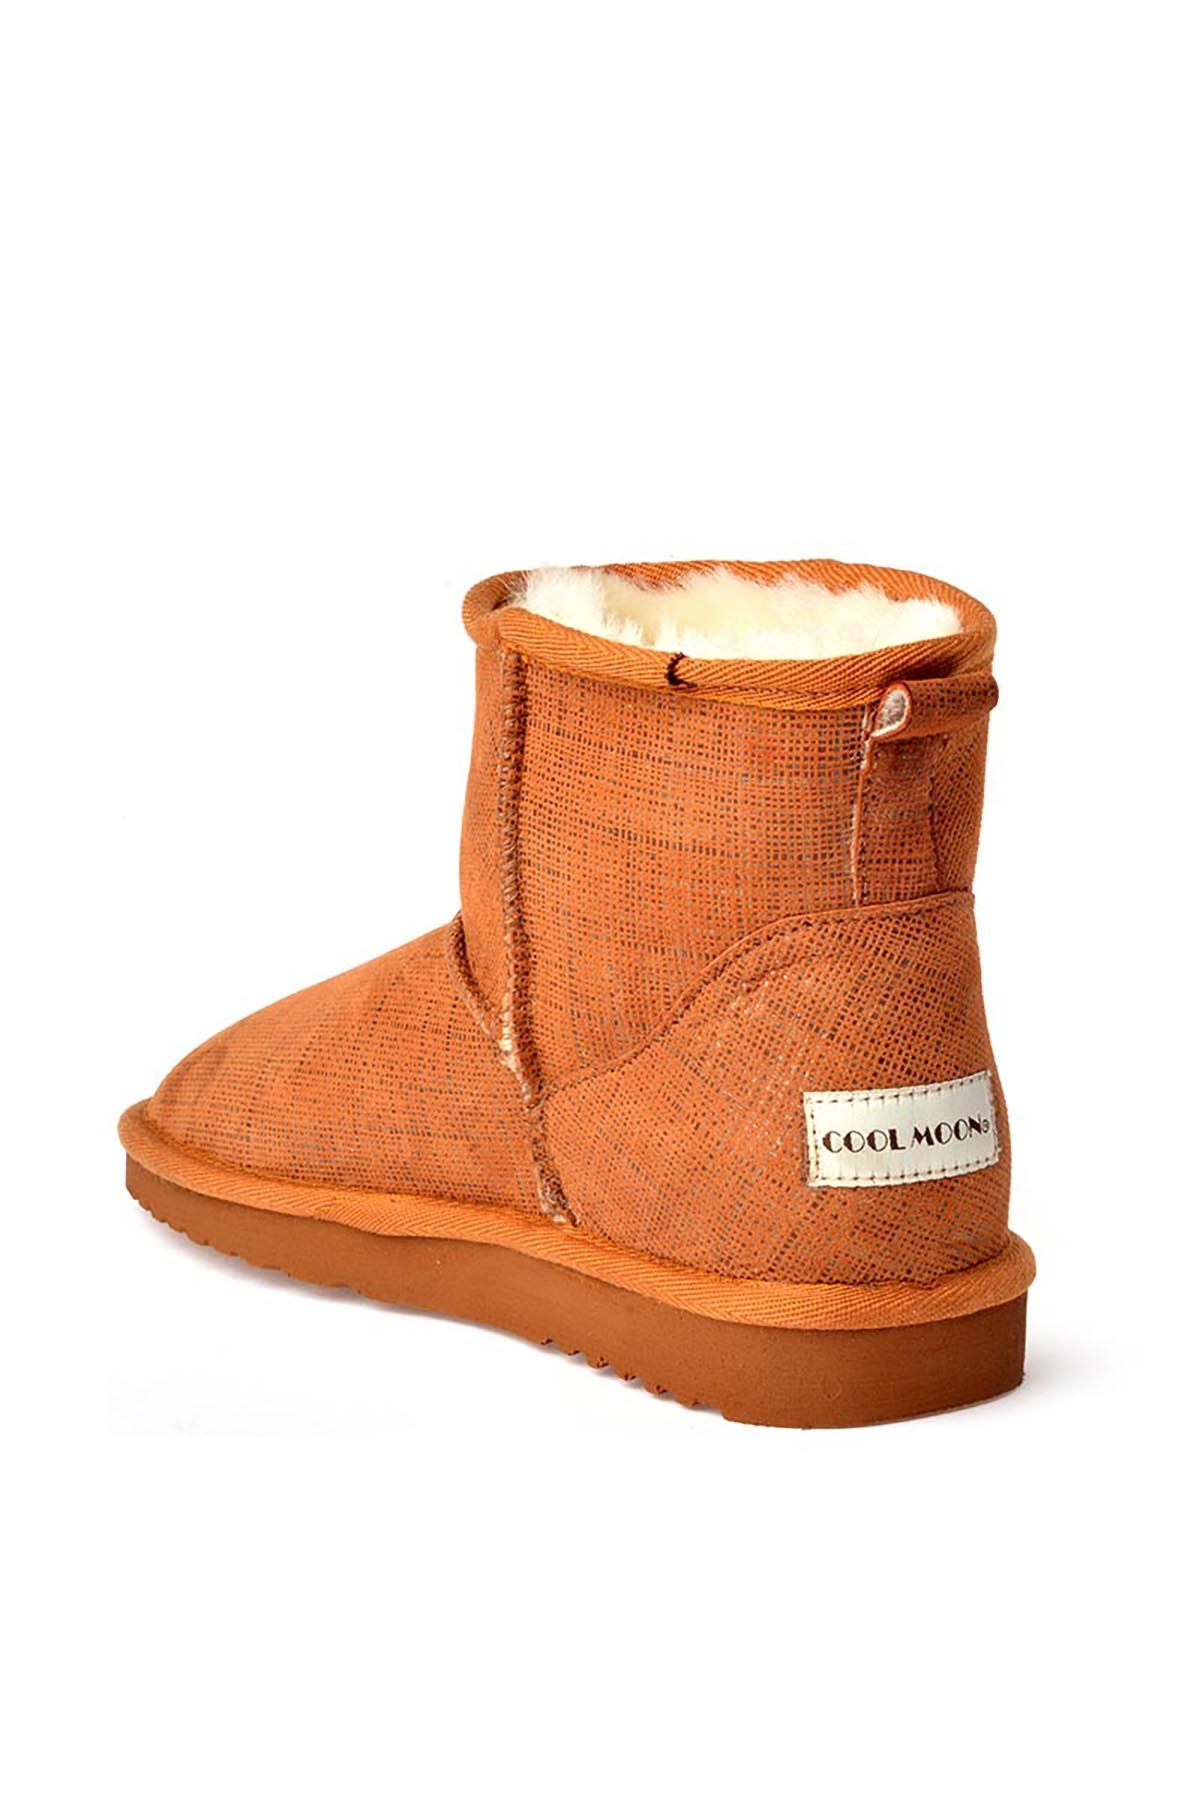 Cool Moon Patterned Women Boots From Genuine Fur 990159 Ginger